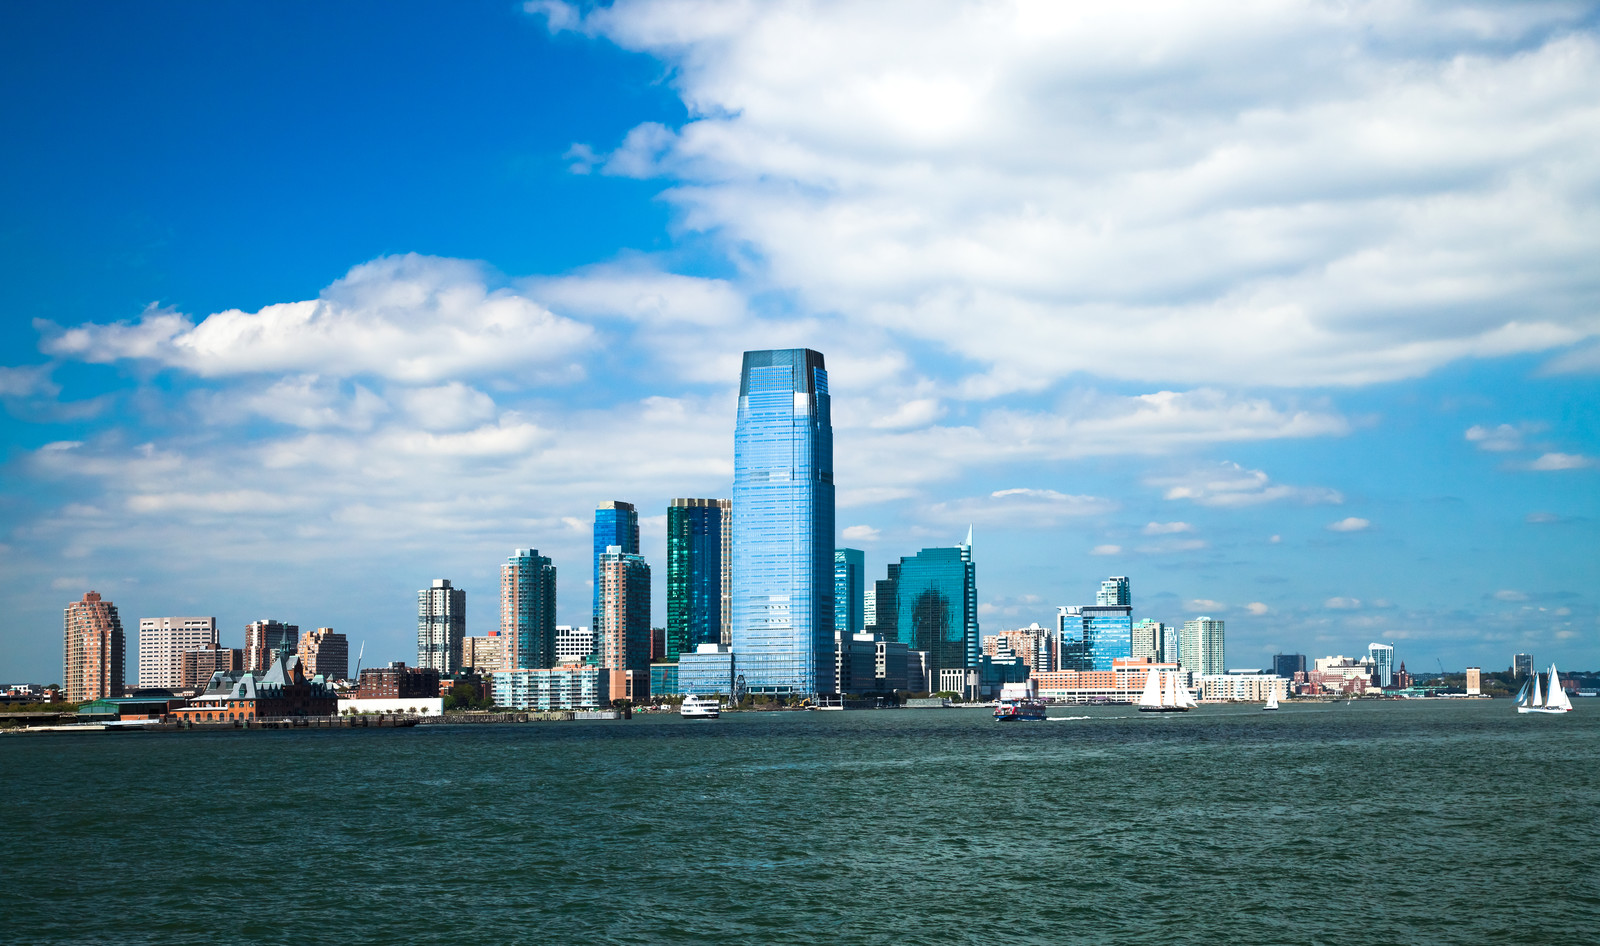 Top 5 Places To Retire in New Jersey - Photo of New Jersey Skyline across the Hudson river with blue skies white fluffy clouds with sailboats on the water